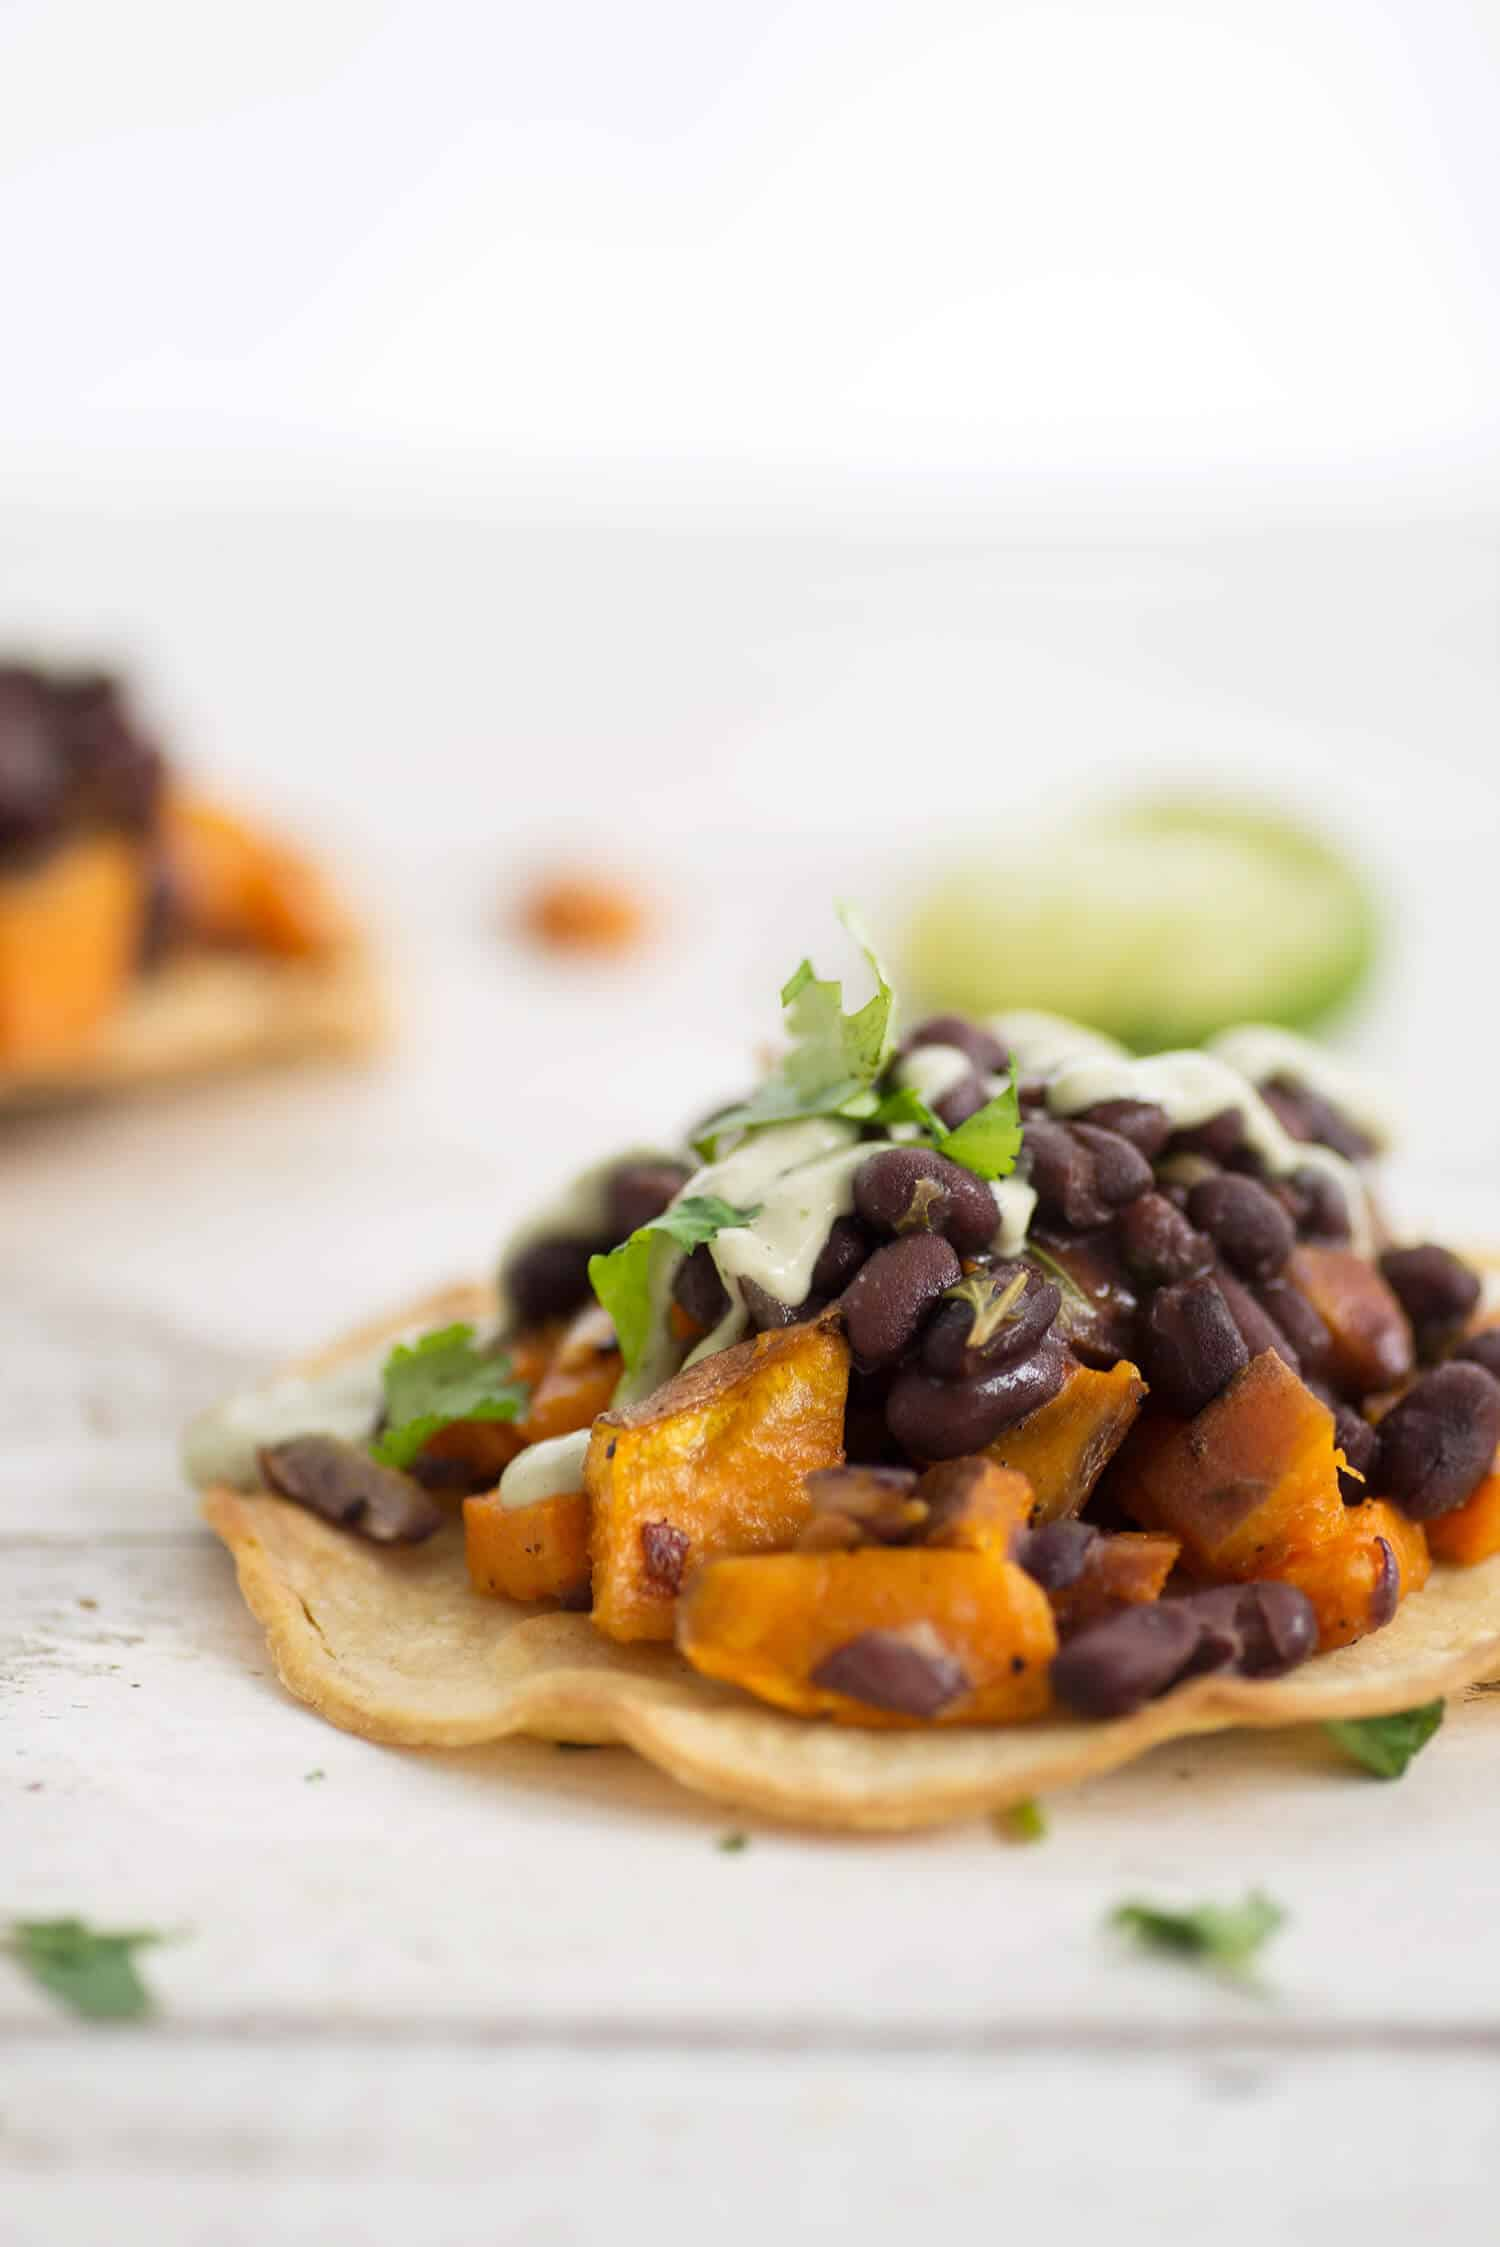 Black Bean and Sweet Potato Tostadas! Seasoned black beans piled high with roasted sweet potatoes, covered with avocado creme. Vegan & GlutenFree | www.delishknowledge.com